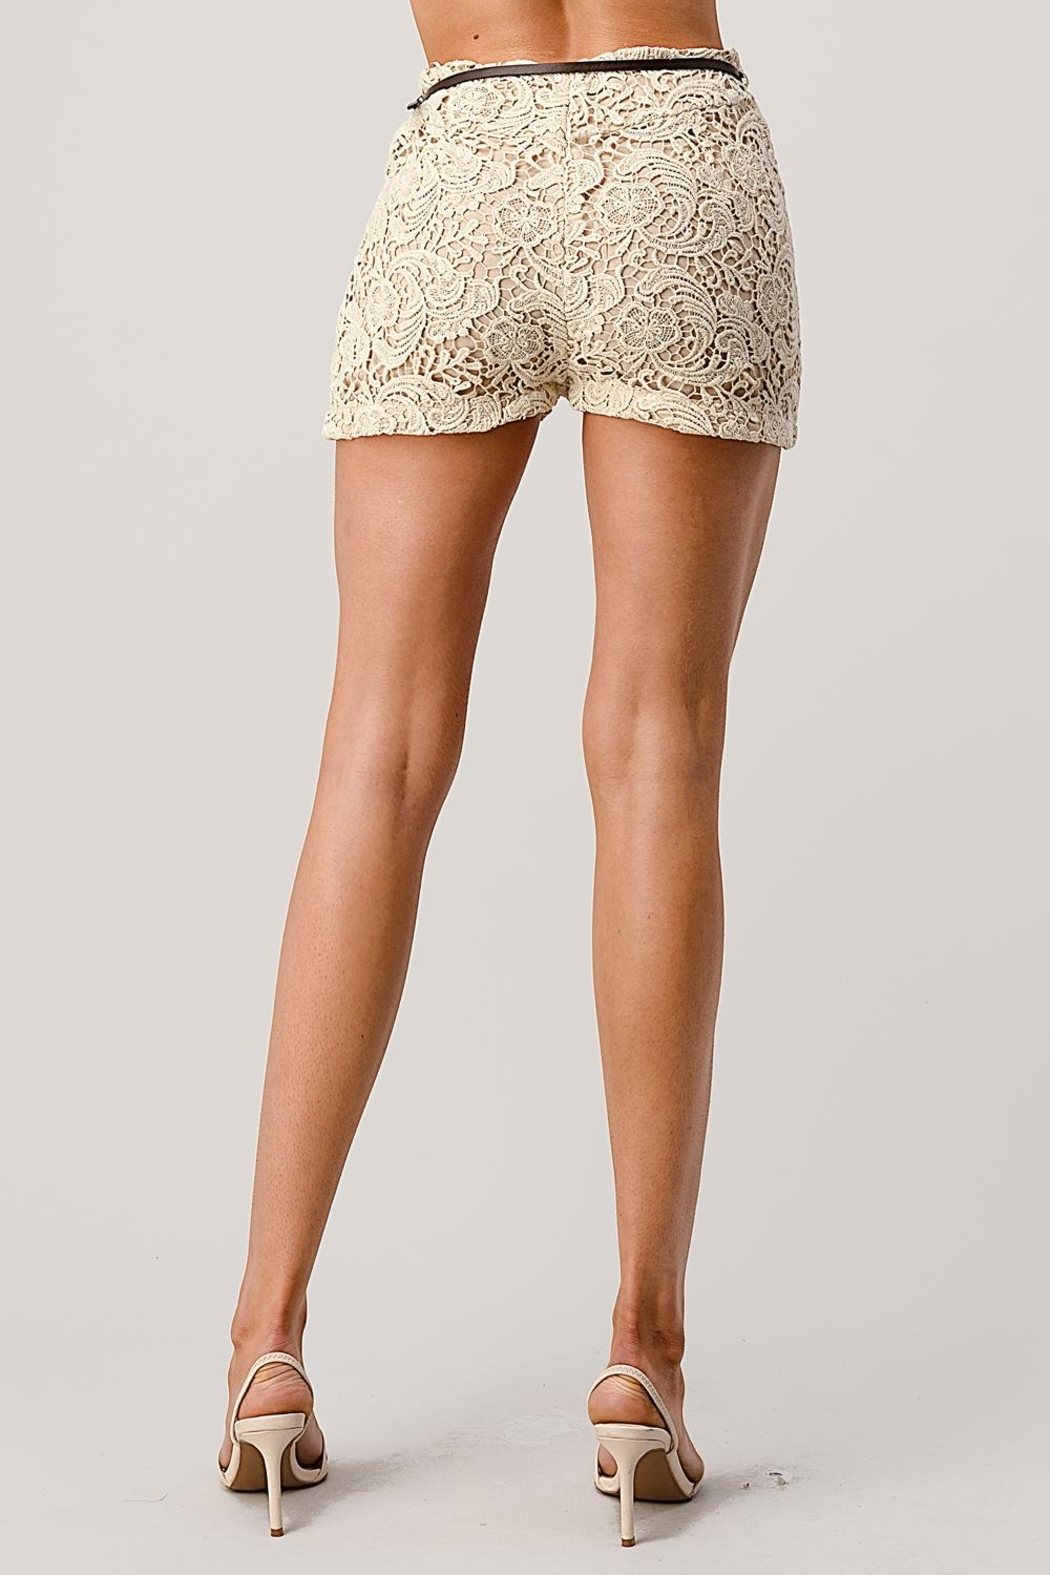 Kaii Fully Lined Belted Shorts In Crochet Lace - Back Cropped Image